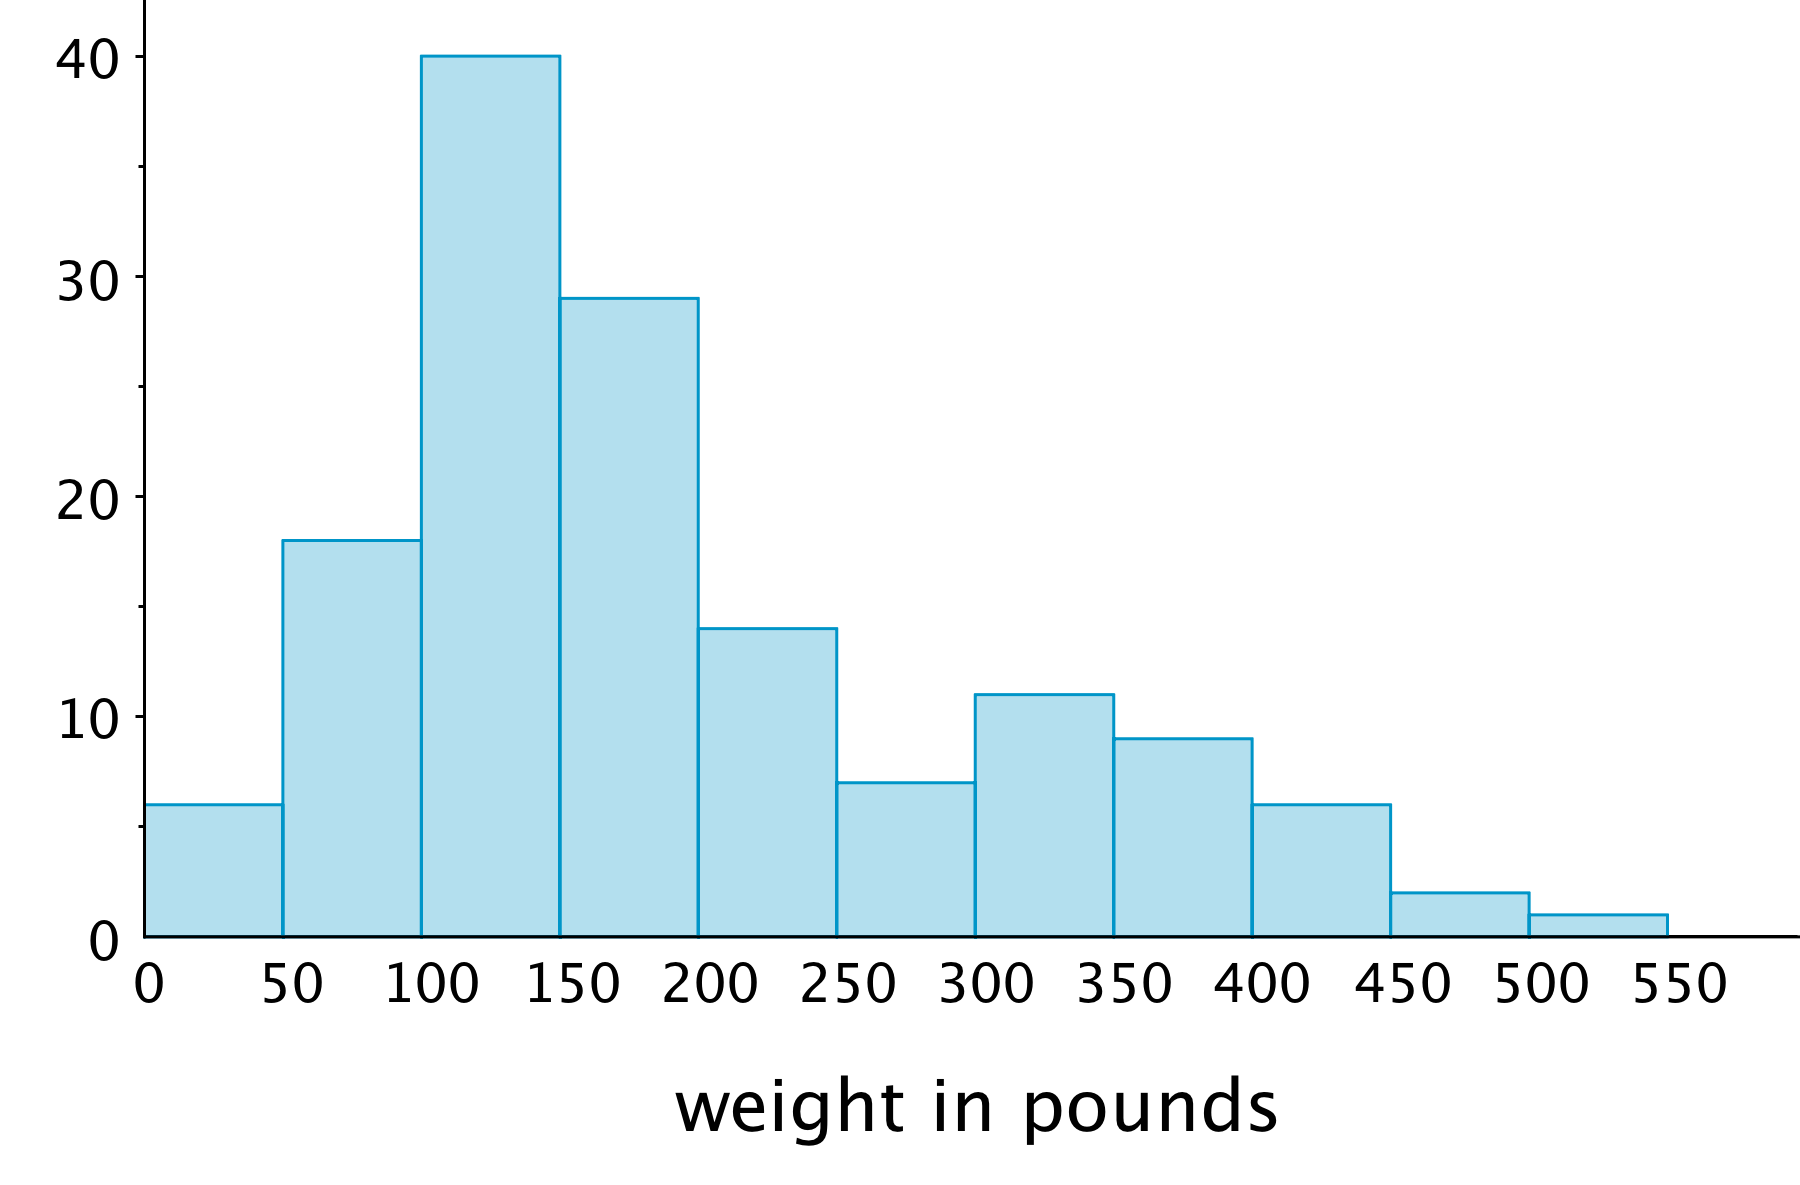 "A histogram. The horizontal axis is labeled ""weight in pounds"" and the numbers 0 through 550, in increments of 50, are indicated. On the vertical axis, the numbers 0 through 40, in increments of 5, are indicated. There are also tick marks midway between. The approximate data for the bars are as follows: From 0 up to 50 pounds, 6 bears  From 50 up to 100 pounds, 18 bears From 100 up to 150 pounds, 40 bears  From 150 up to 200 pounds, 28 bears  From 200 up to 250 pounds, 14 bears  From 250 up to 300 pounds, 7 bears  From 300 up to 350 pounds, 11 bears   From 350 up to 400 pounds, 10 bears  From 400 up to 450 pounds, 6 bears From 450 up to 500 pounds, 2 bears From 500 up to 550 pounds, 1 bear"